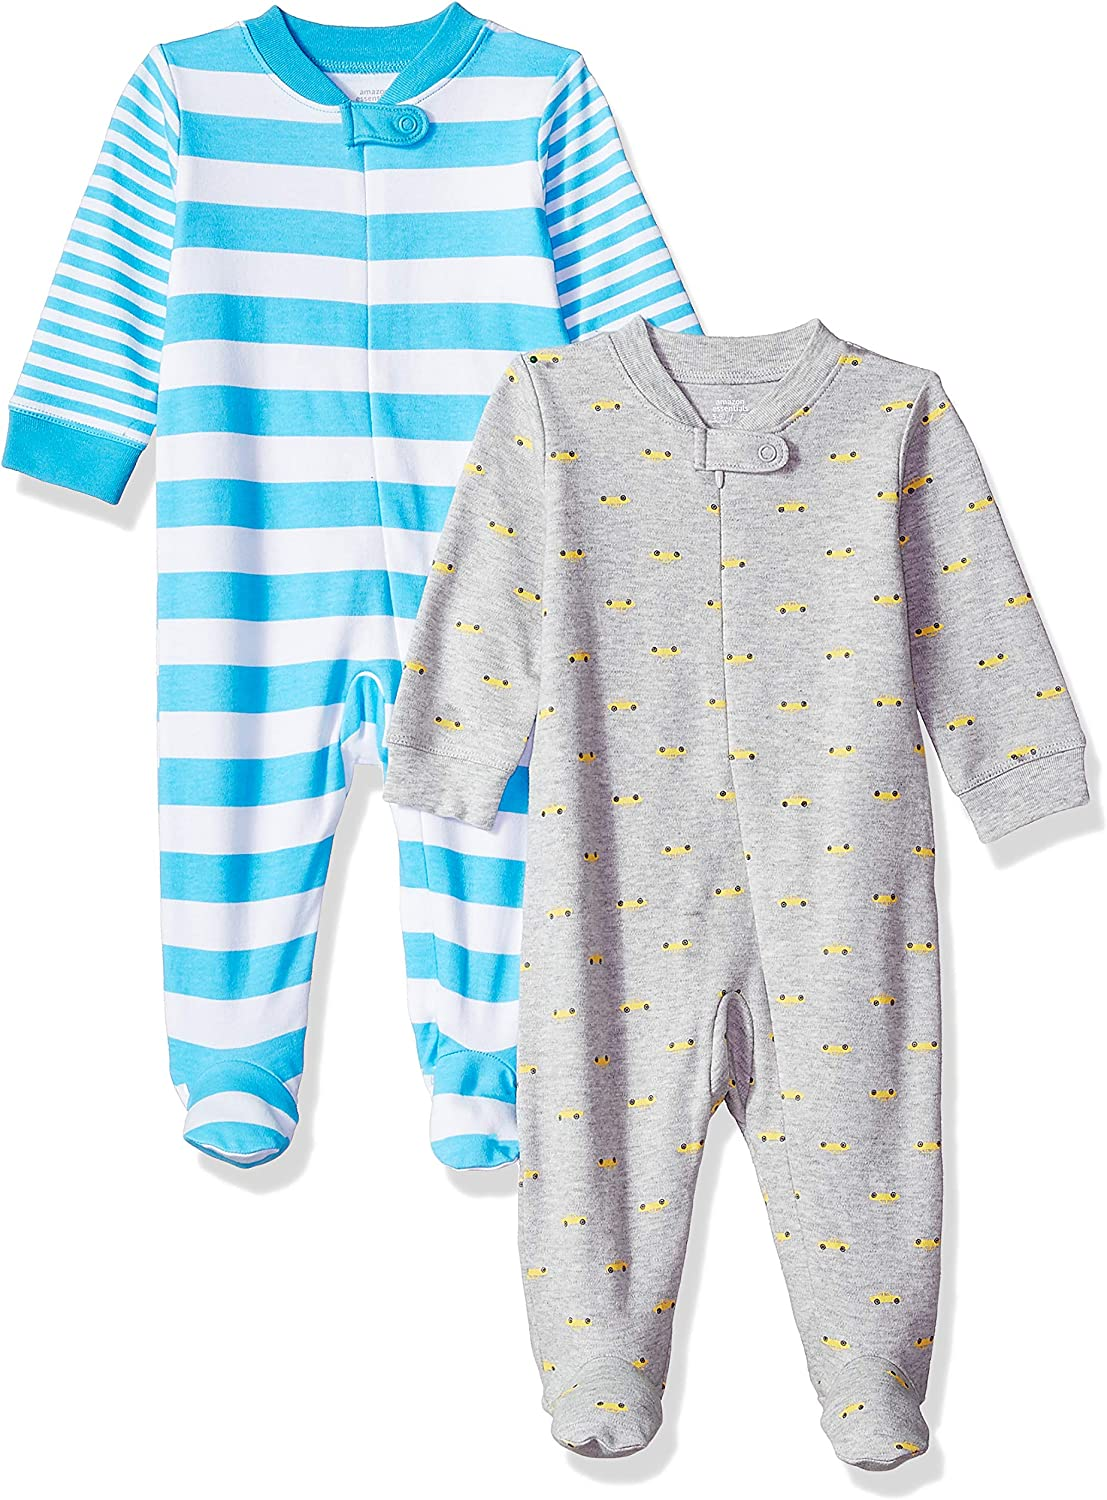 Essentials Baby Zip-Front Footed Sleep and Play